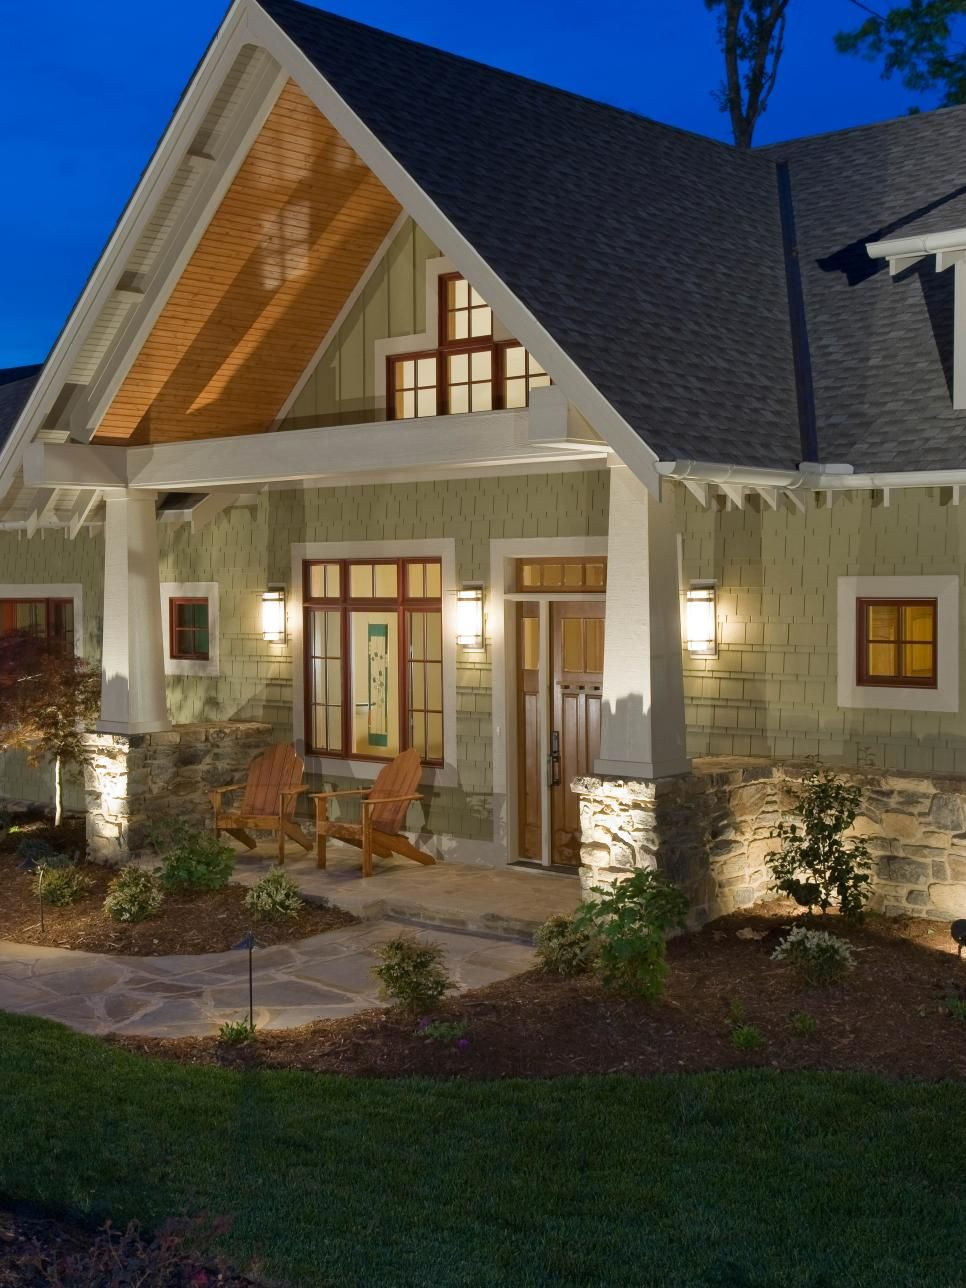 This Craftsmanstyle home has a large, inviting front